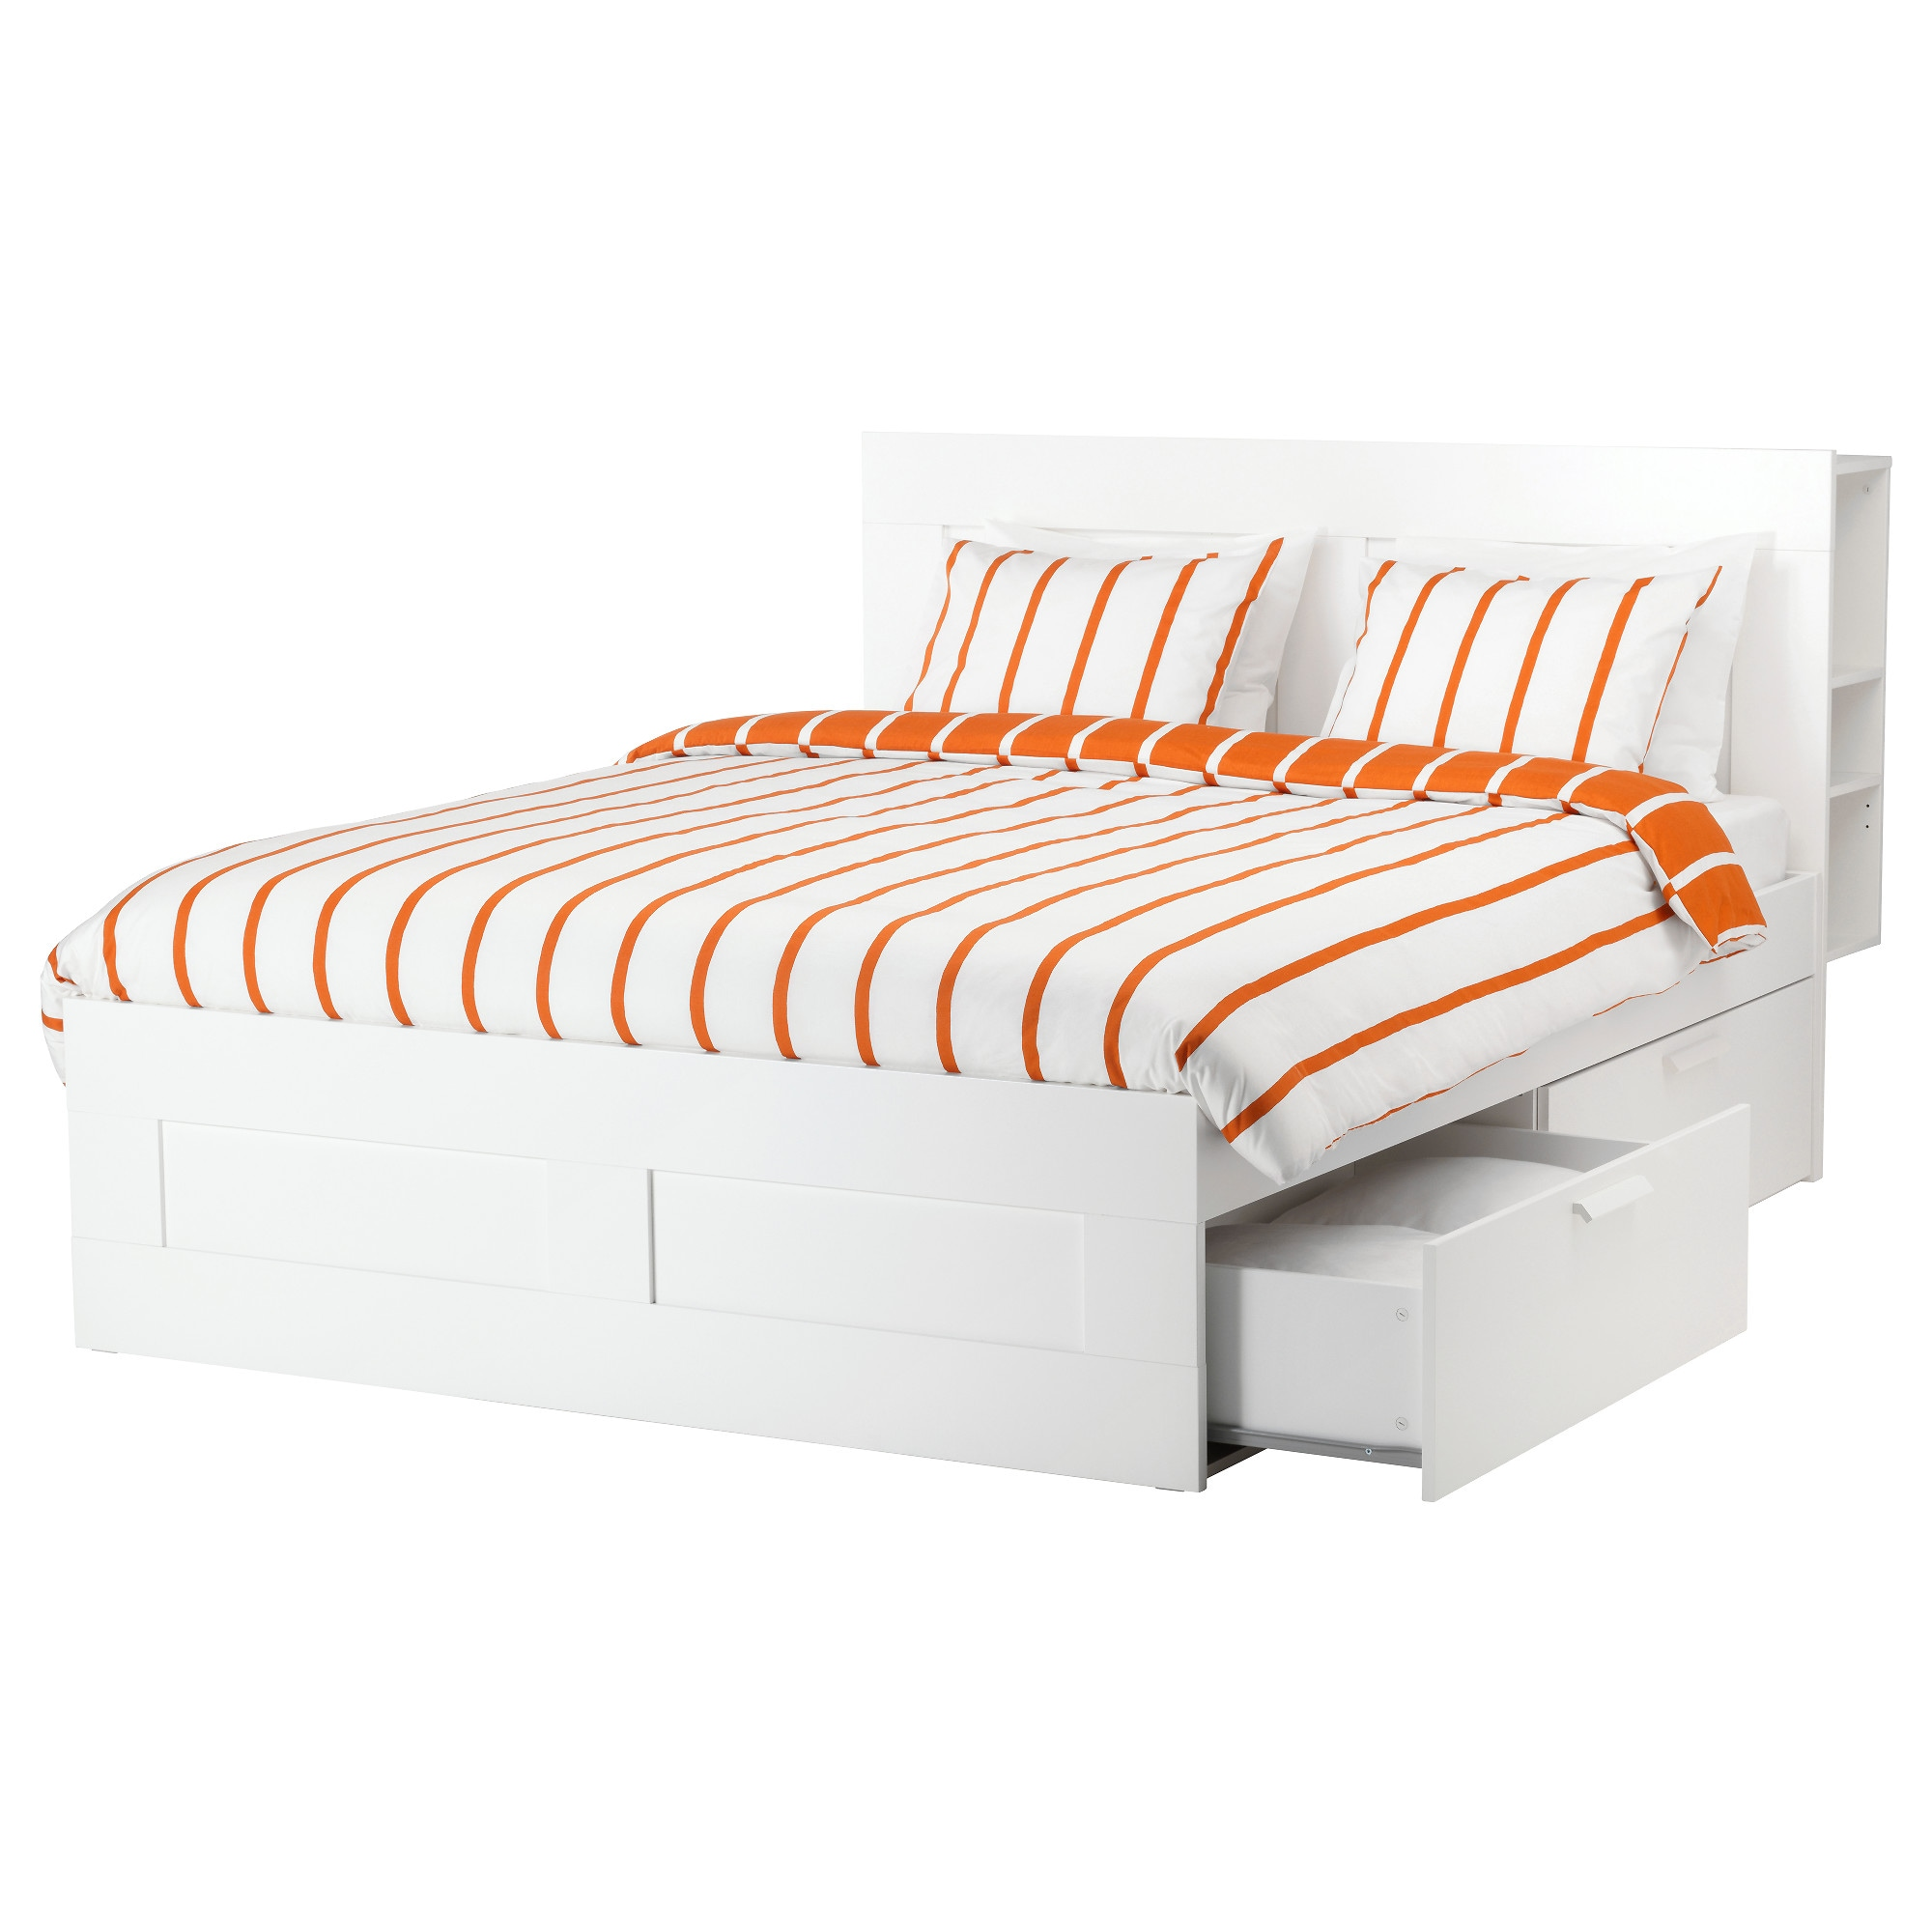 Ikea White Queen Bed brimnes bed frame with storage ikea the four drawers in the bed frame provide a lot Brimnes Bed Frame With Storage Headboard Queen Lnset Ikea